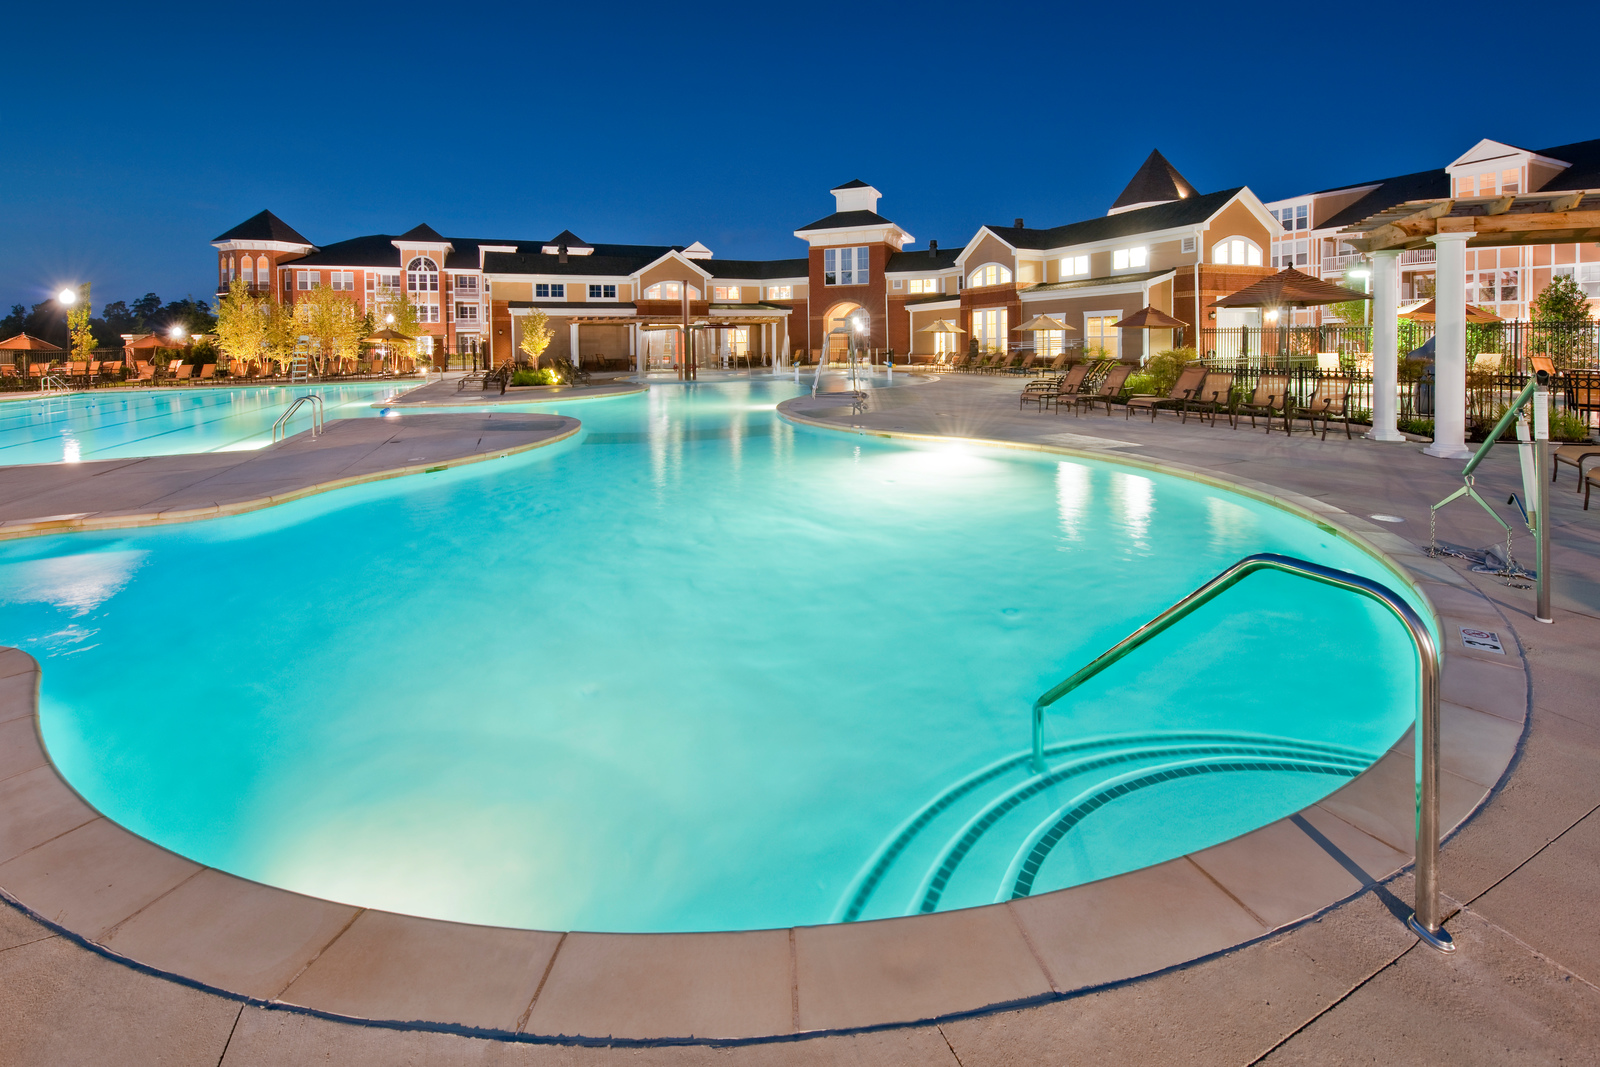 New Homes For Sale At Westchester Square In Waldorf Md Within The